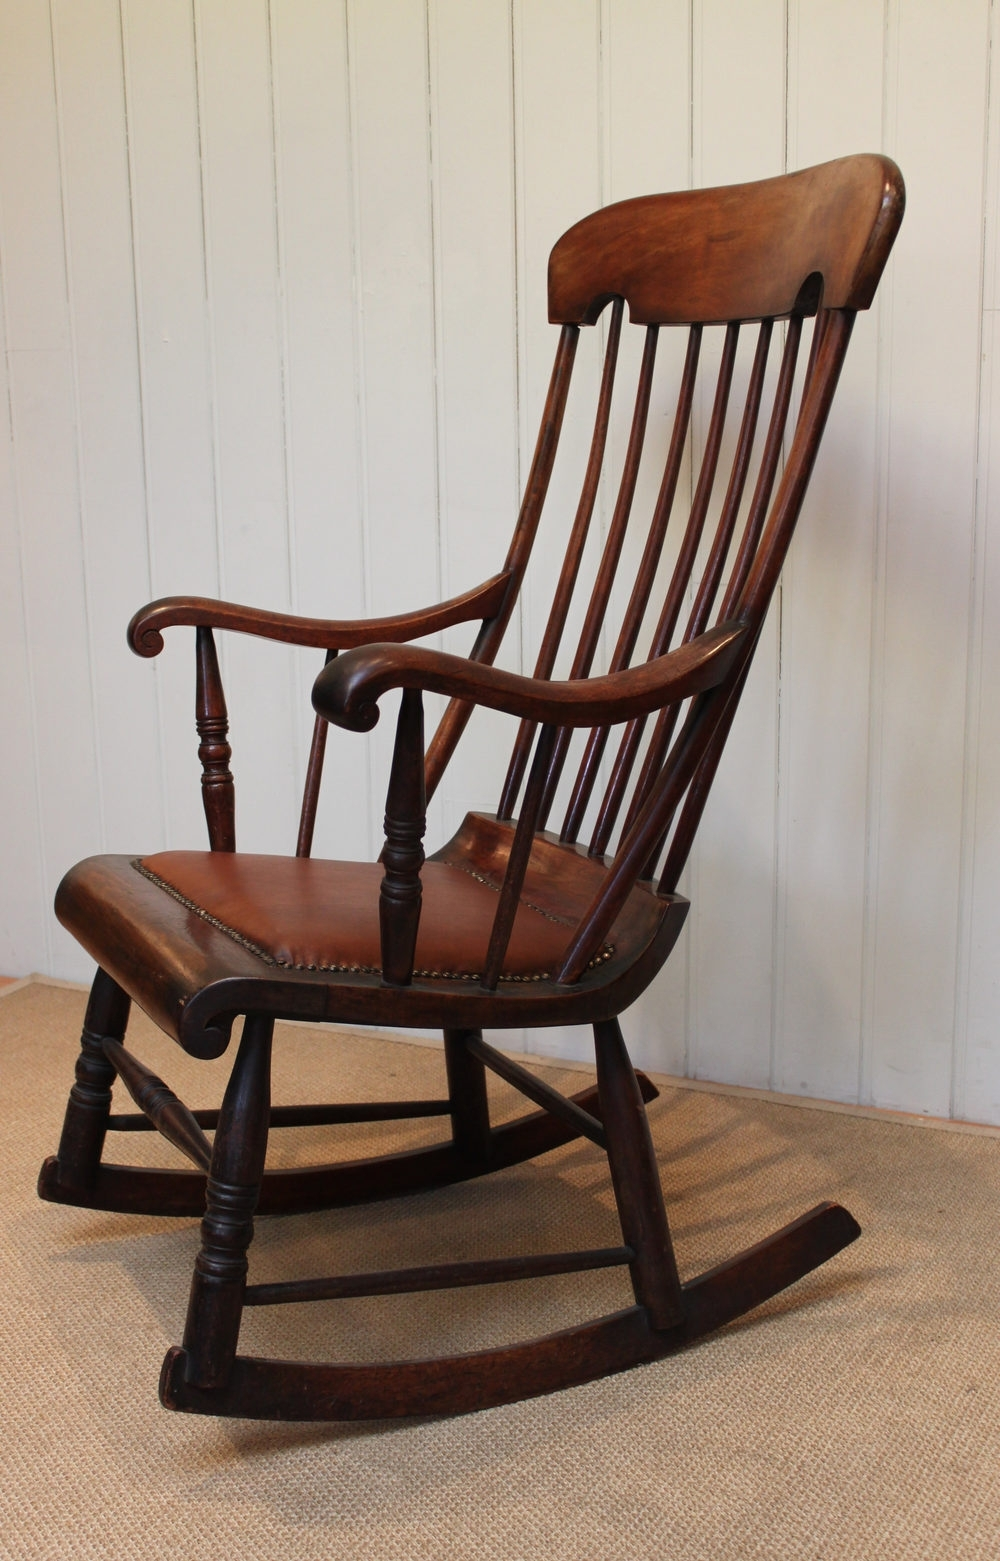 Favorite Victorian Fruitwood Rocking Chair – Antiques Atlas For Victorian Rocking Chairs (View 8 of 20)